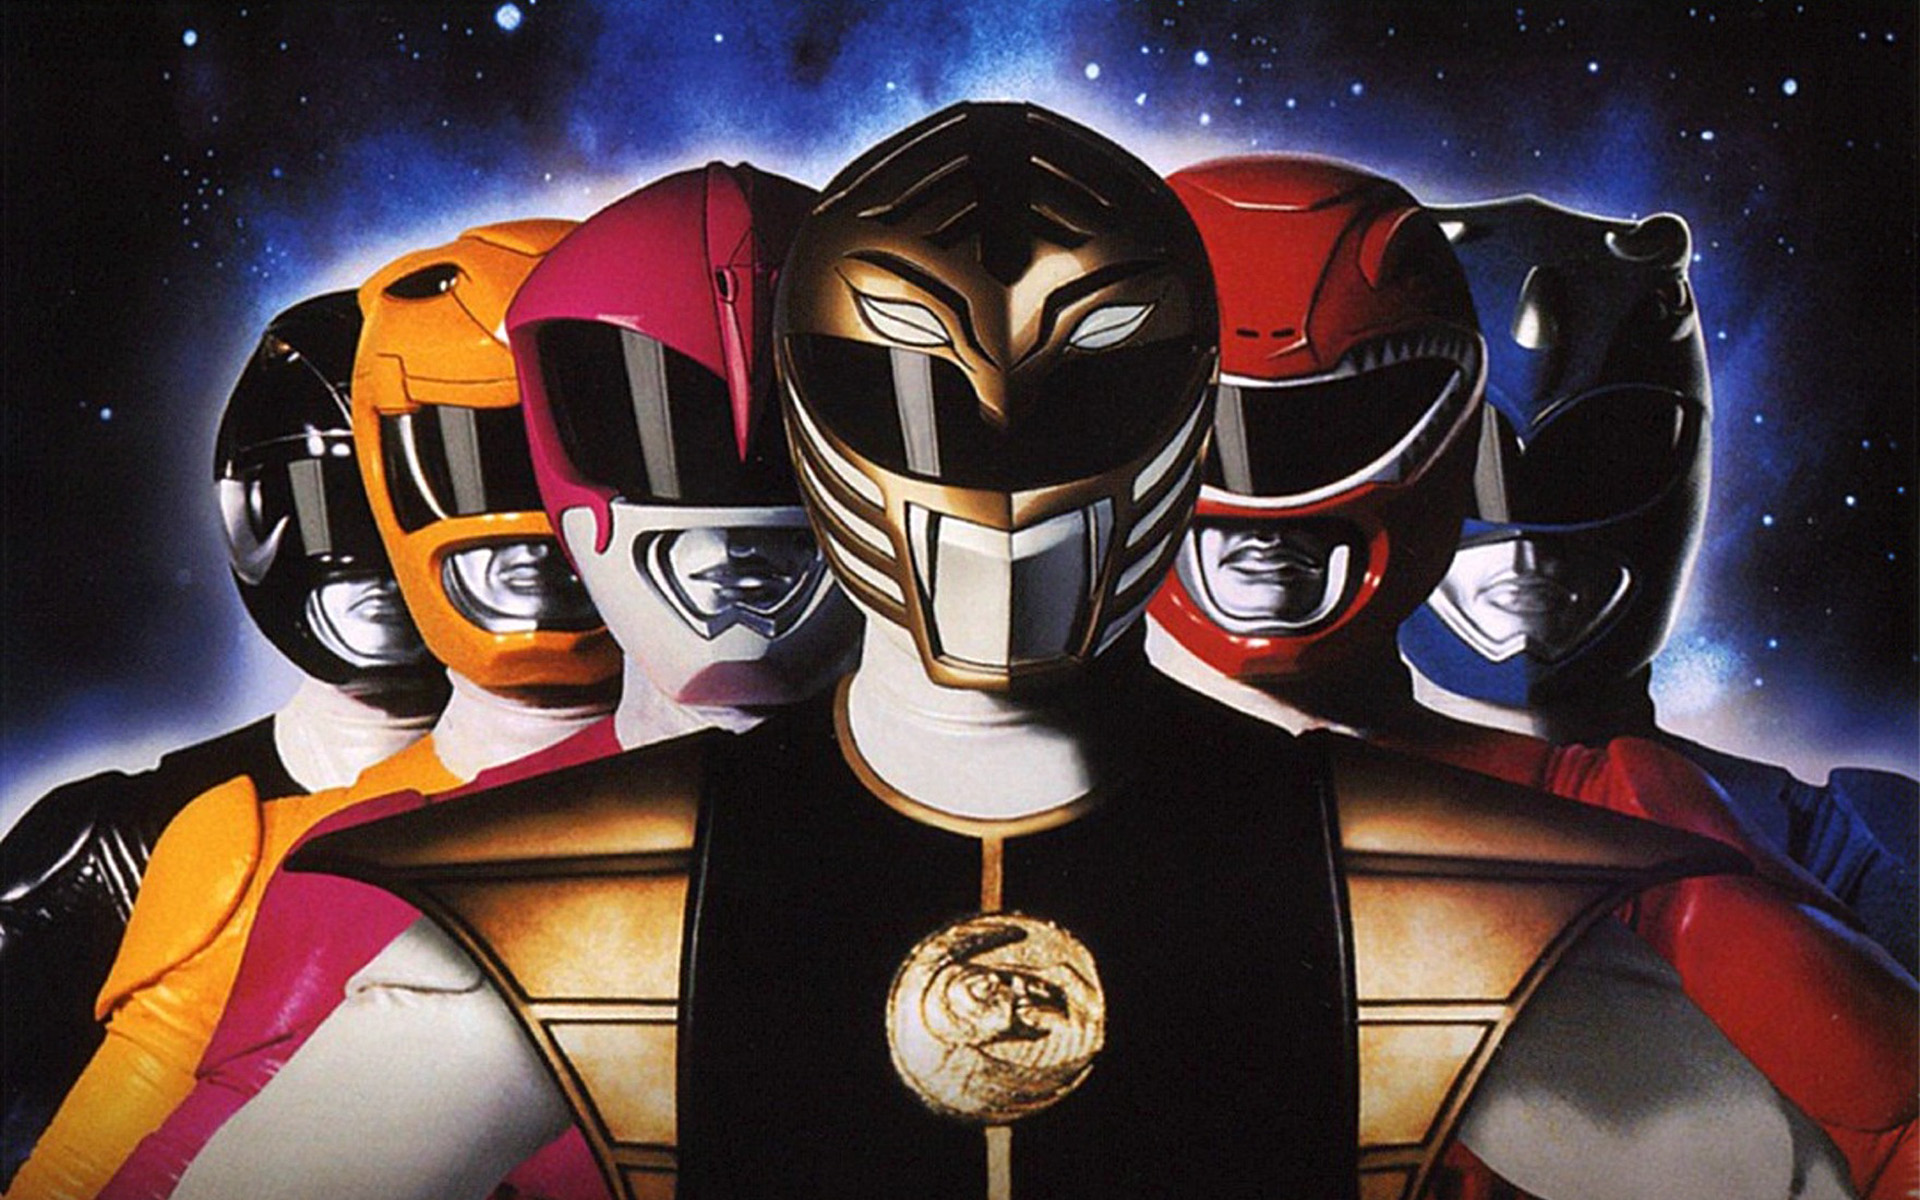 MIGHTY MORPHIN POWER RANGERS THE MOVIE IN 30 SECONDS 1920x1200